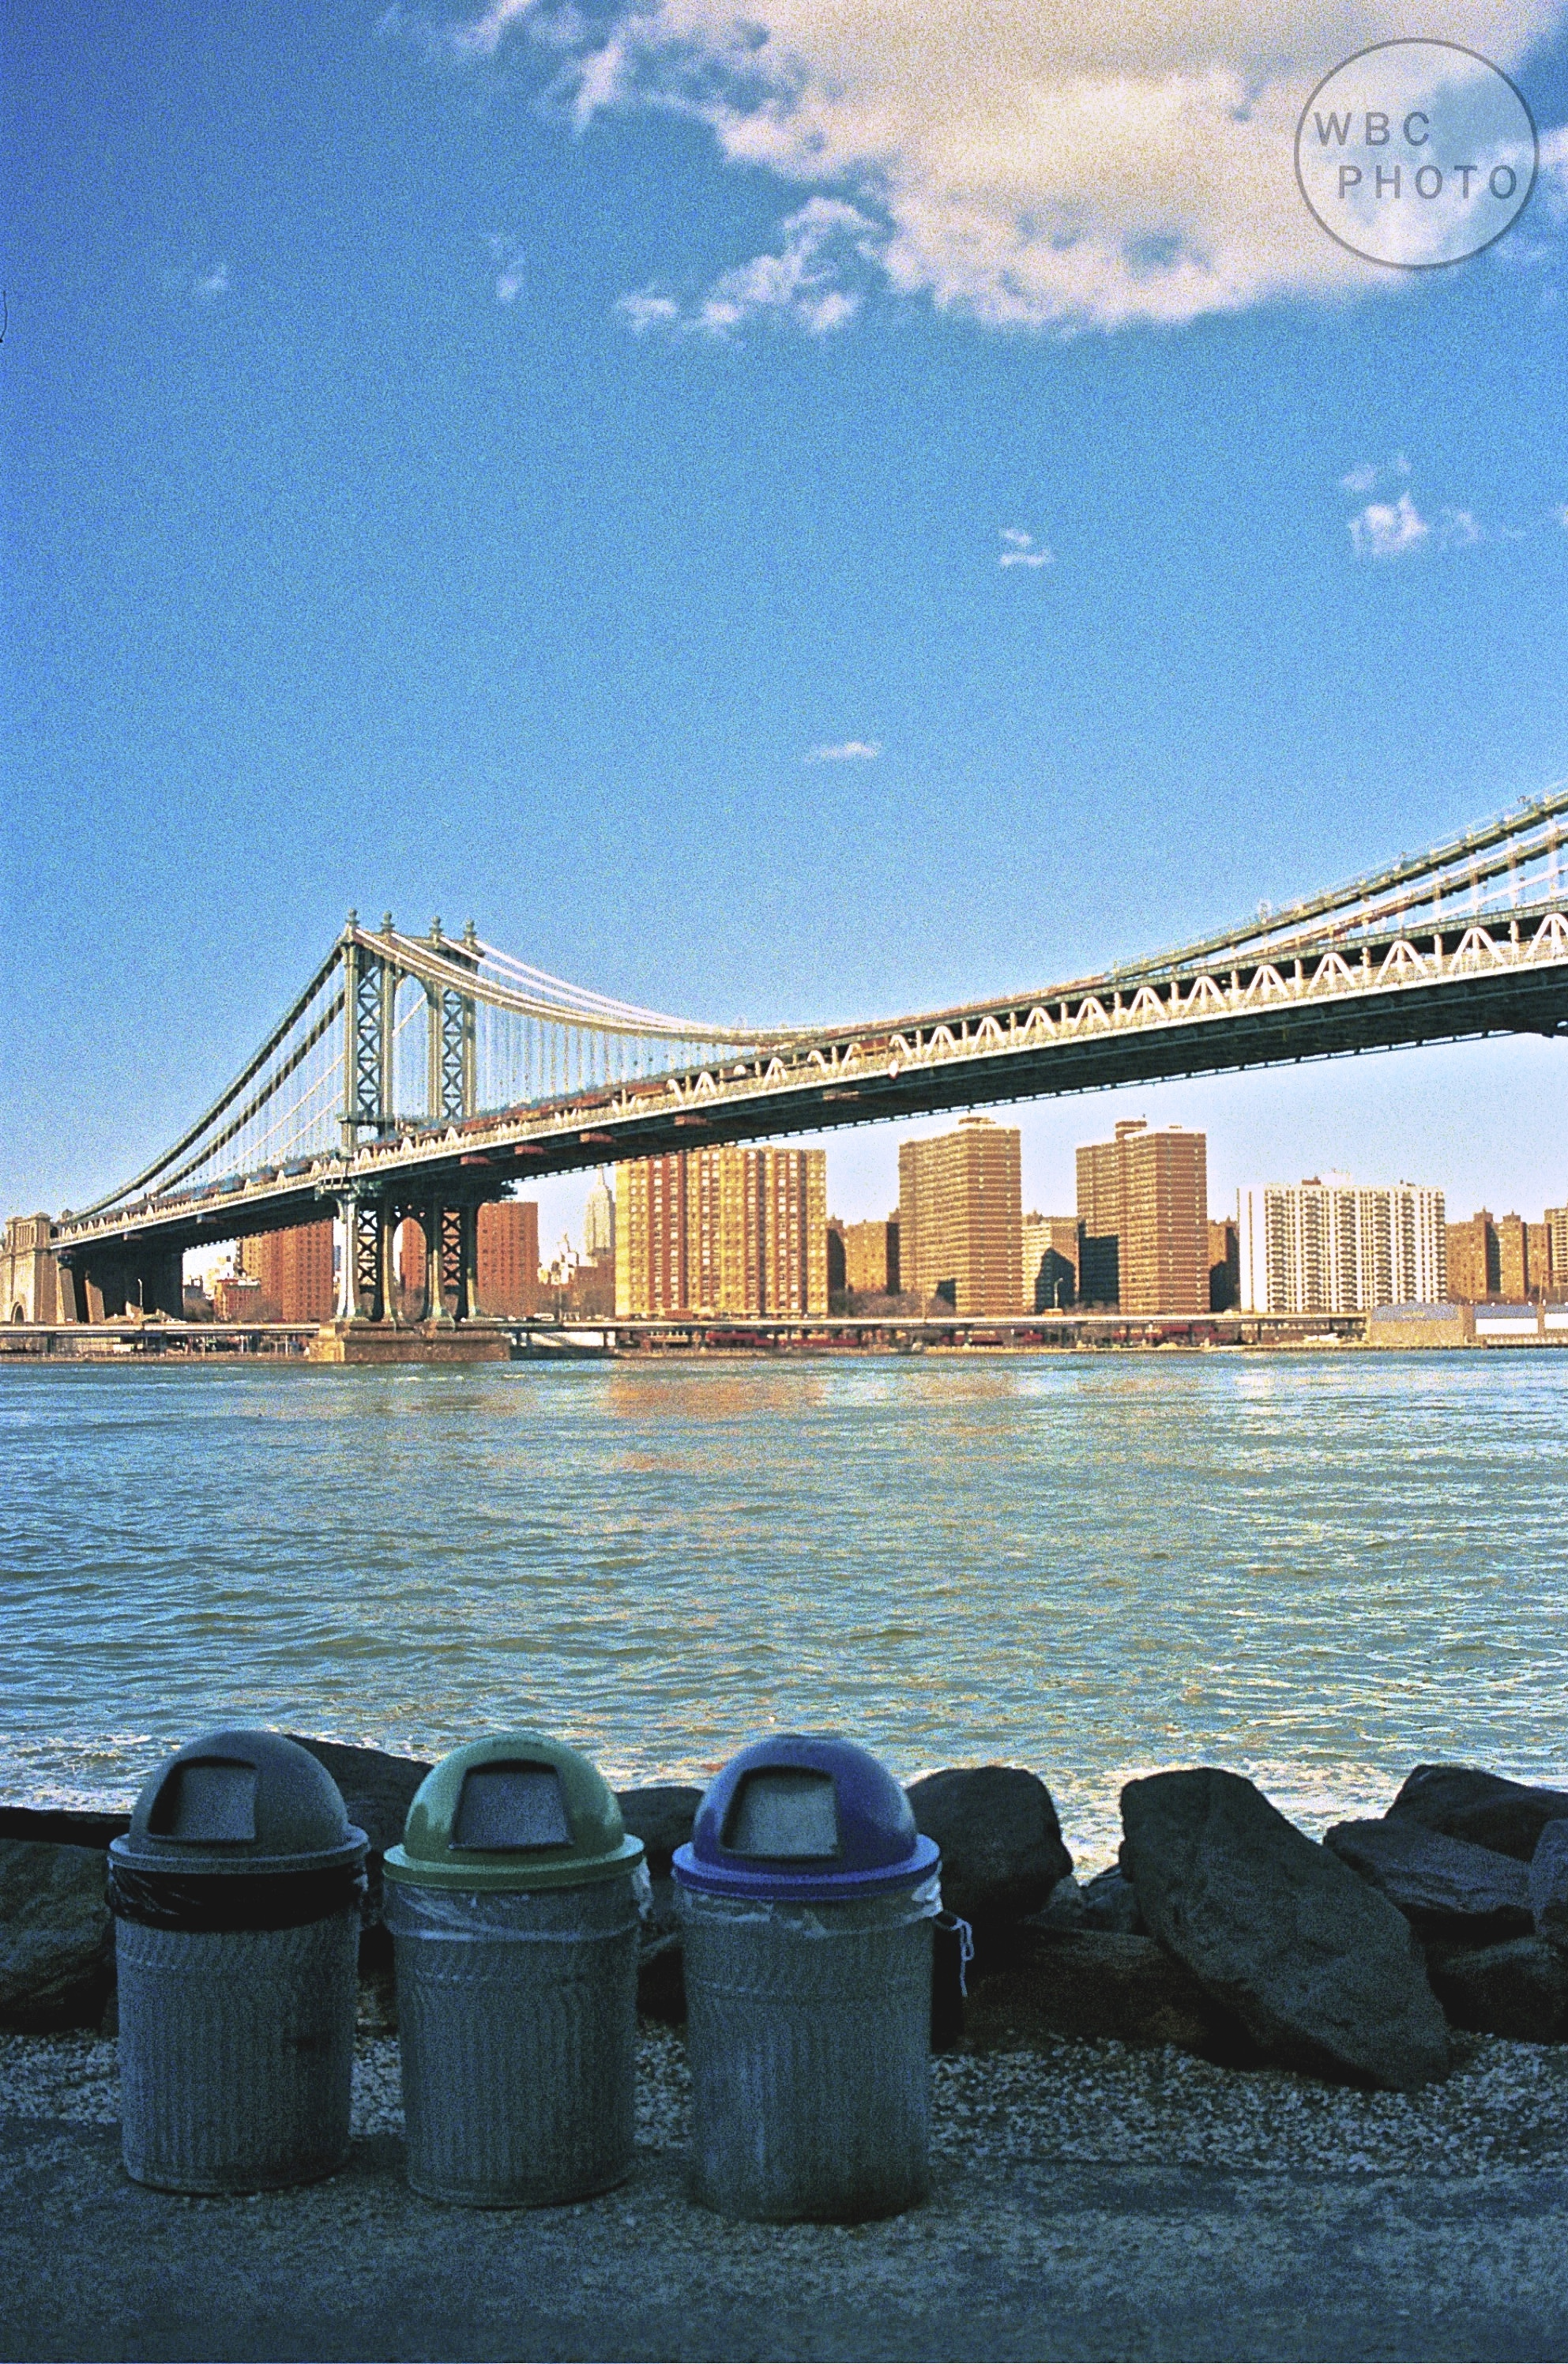 three-trashcans-manhattan-bridge-wbc-film.jpg